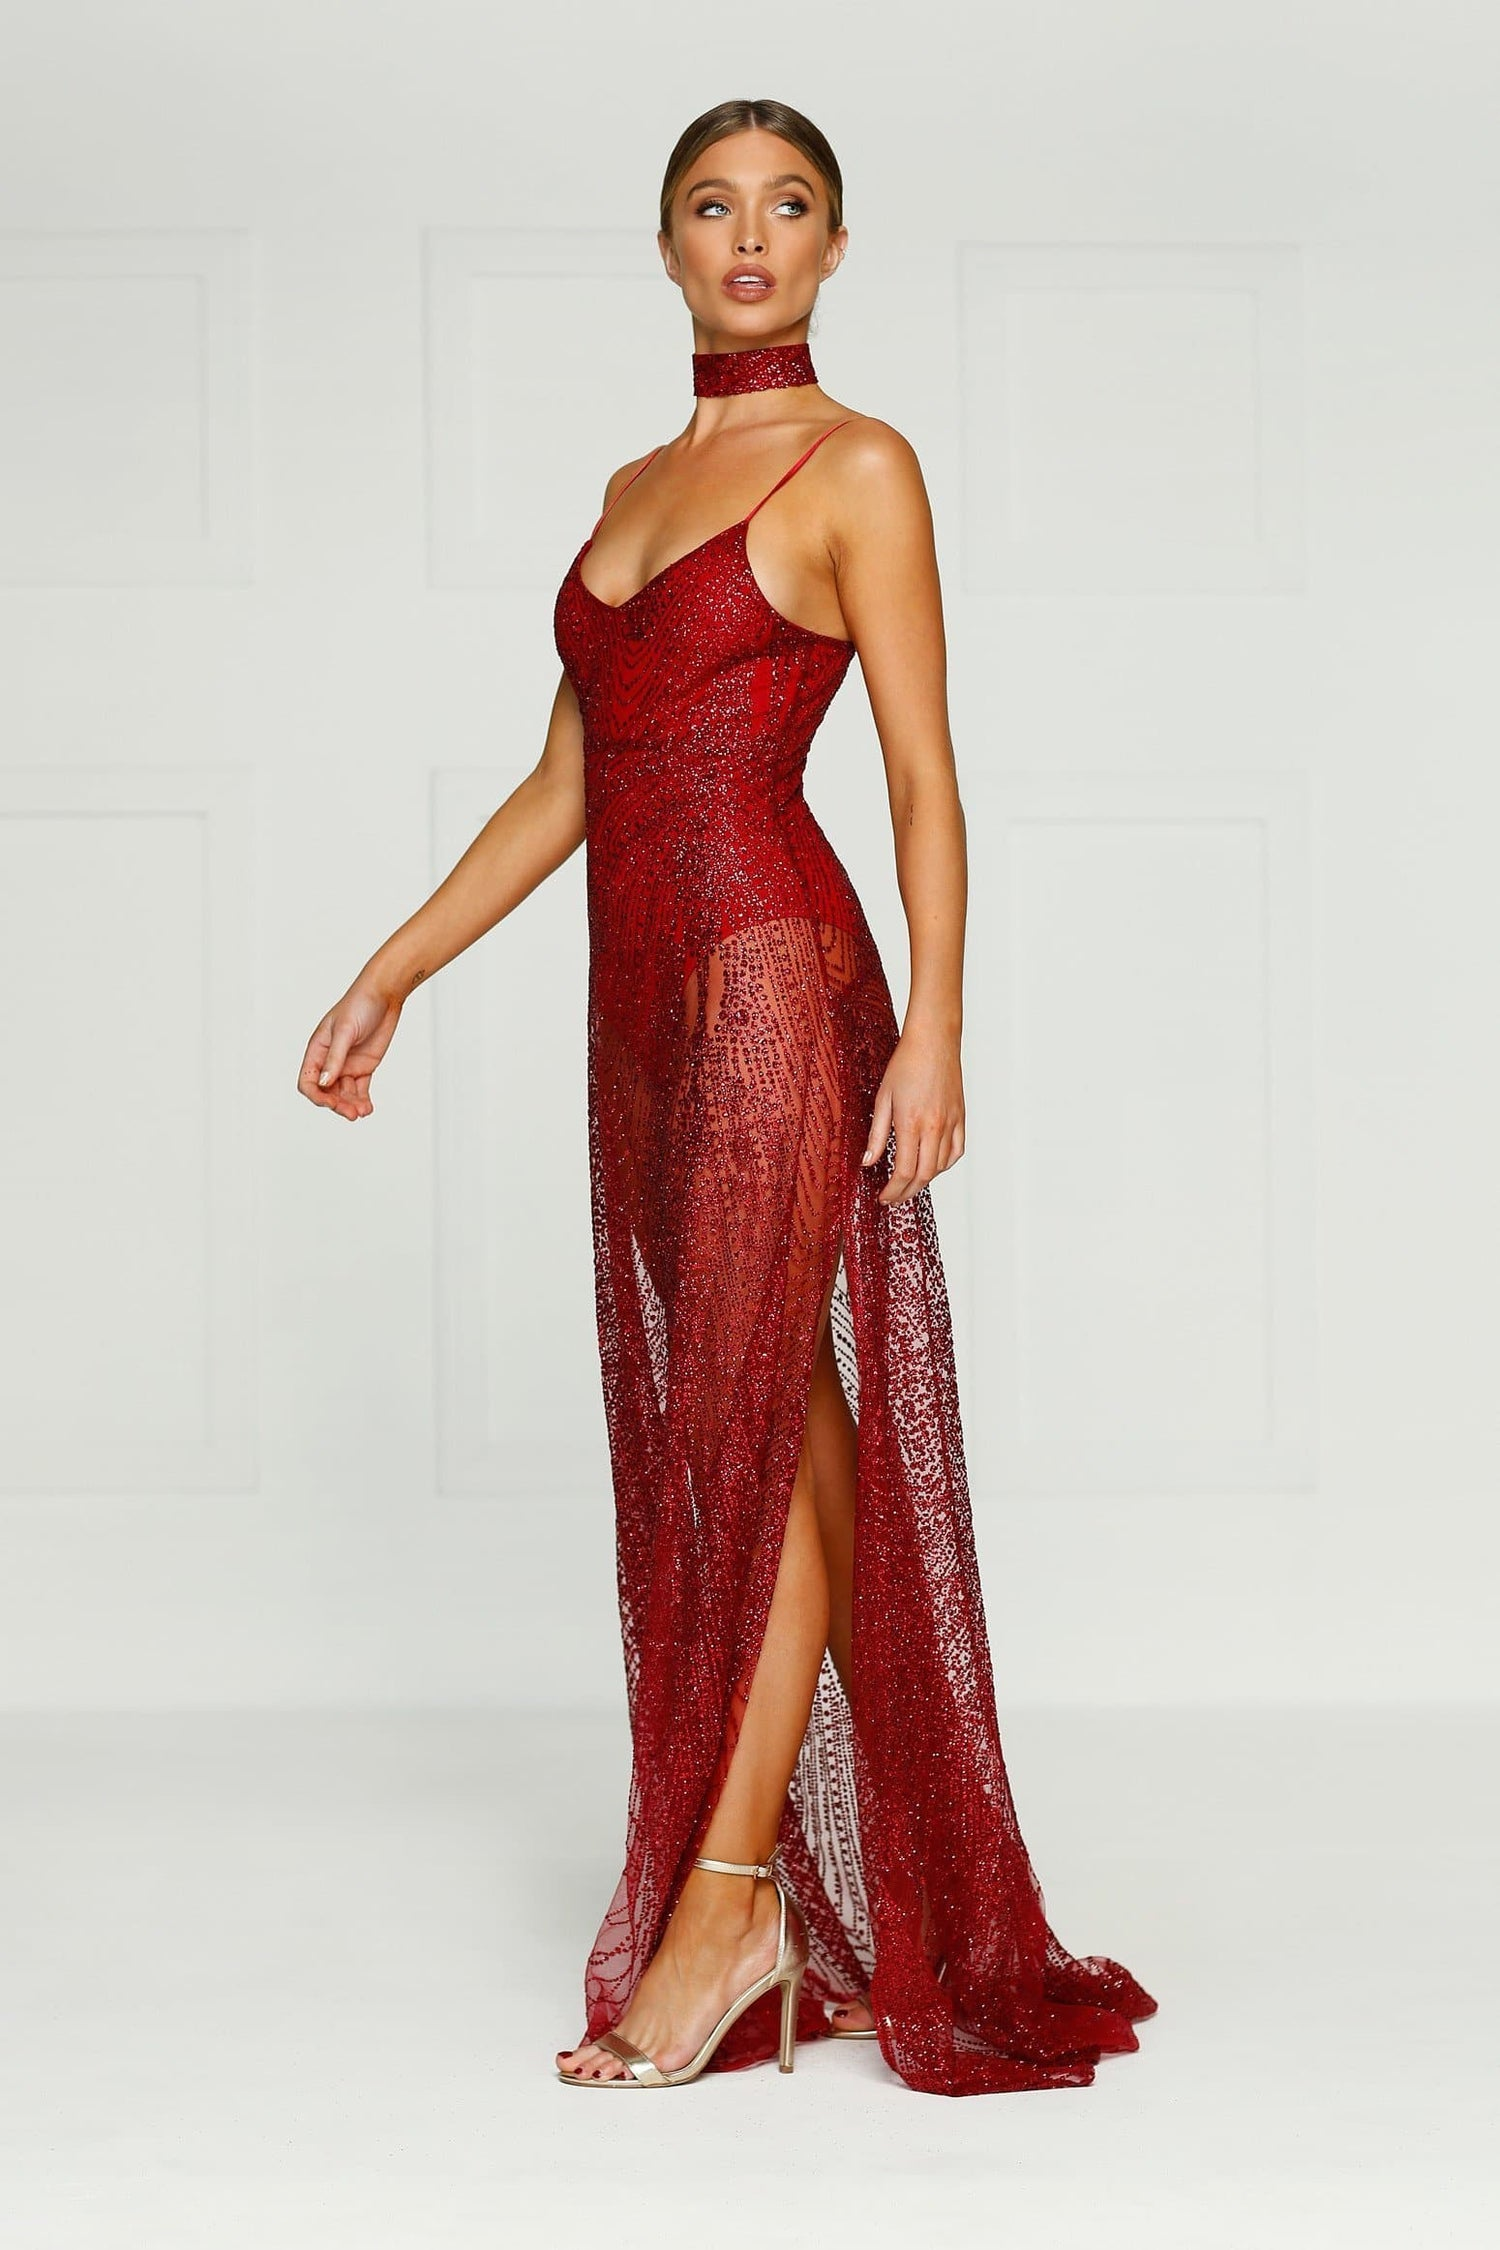 Jewels - Burgundy Glitter Gown with V-Neckline, Low Back & Side Slits